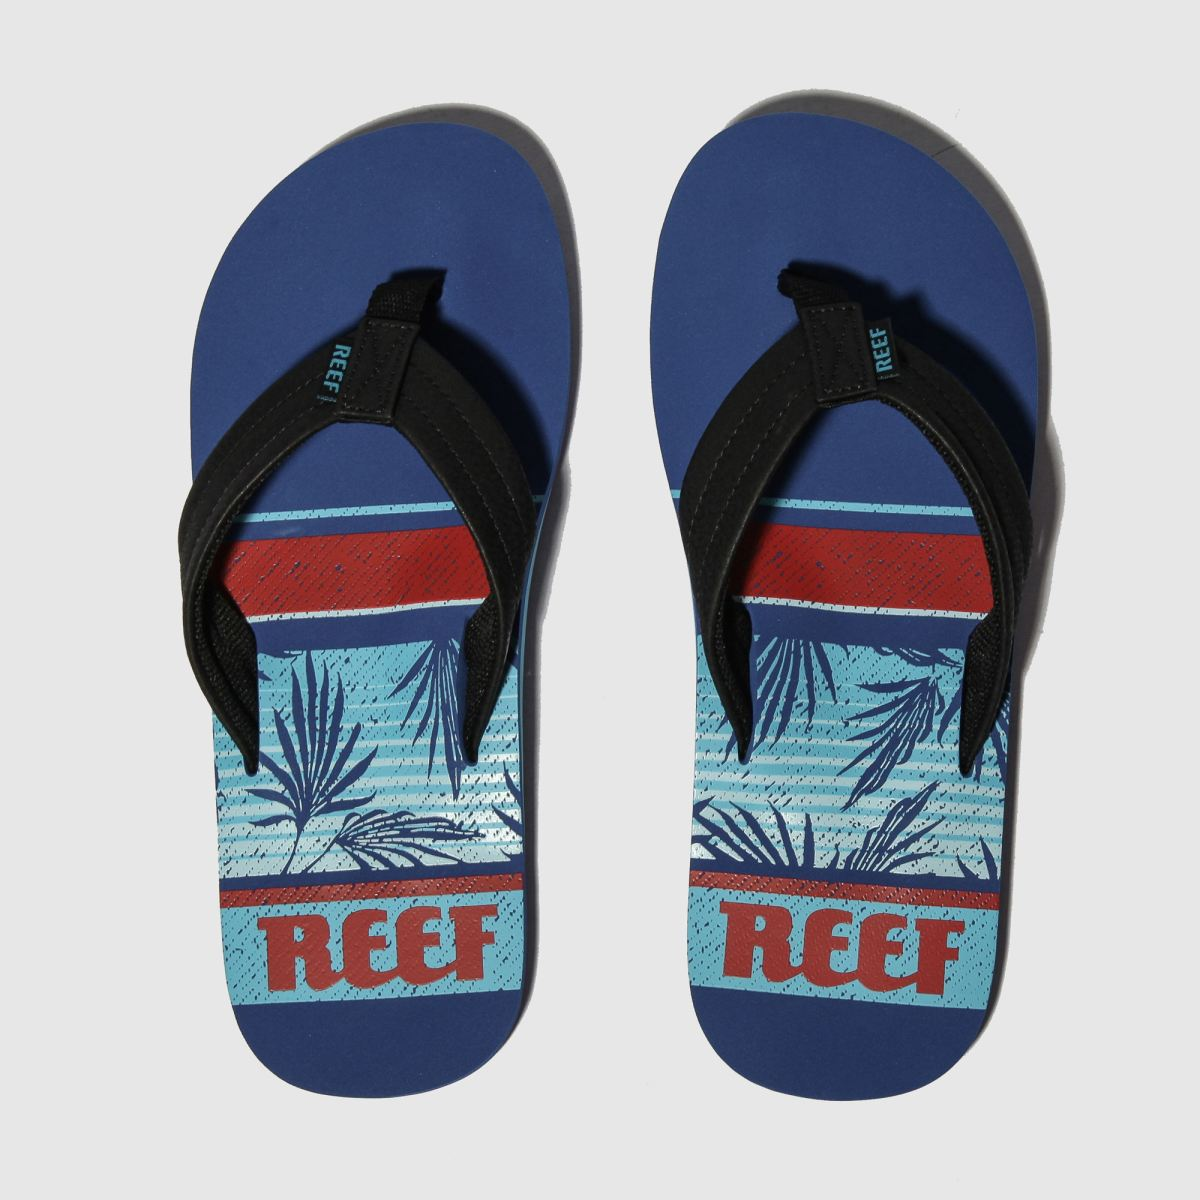 Reef Reef Blue Waters Sandals